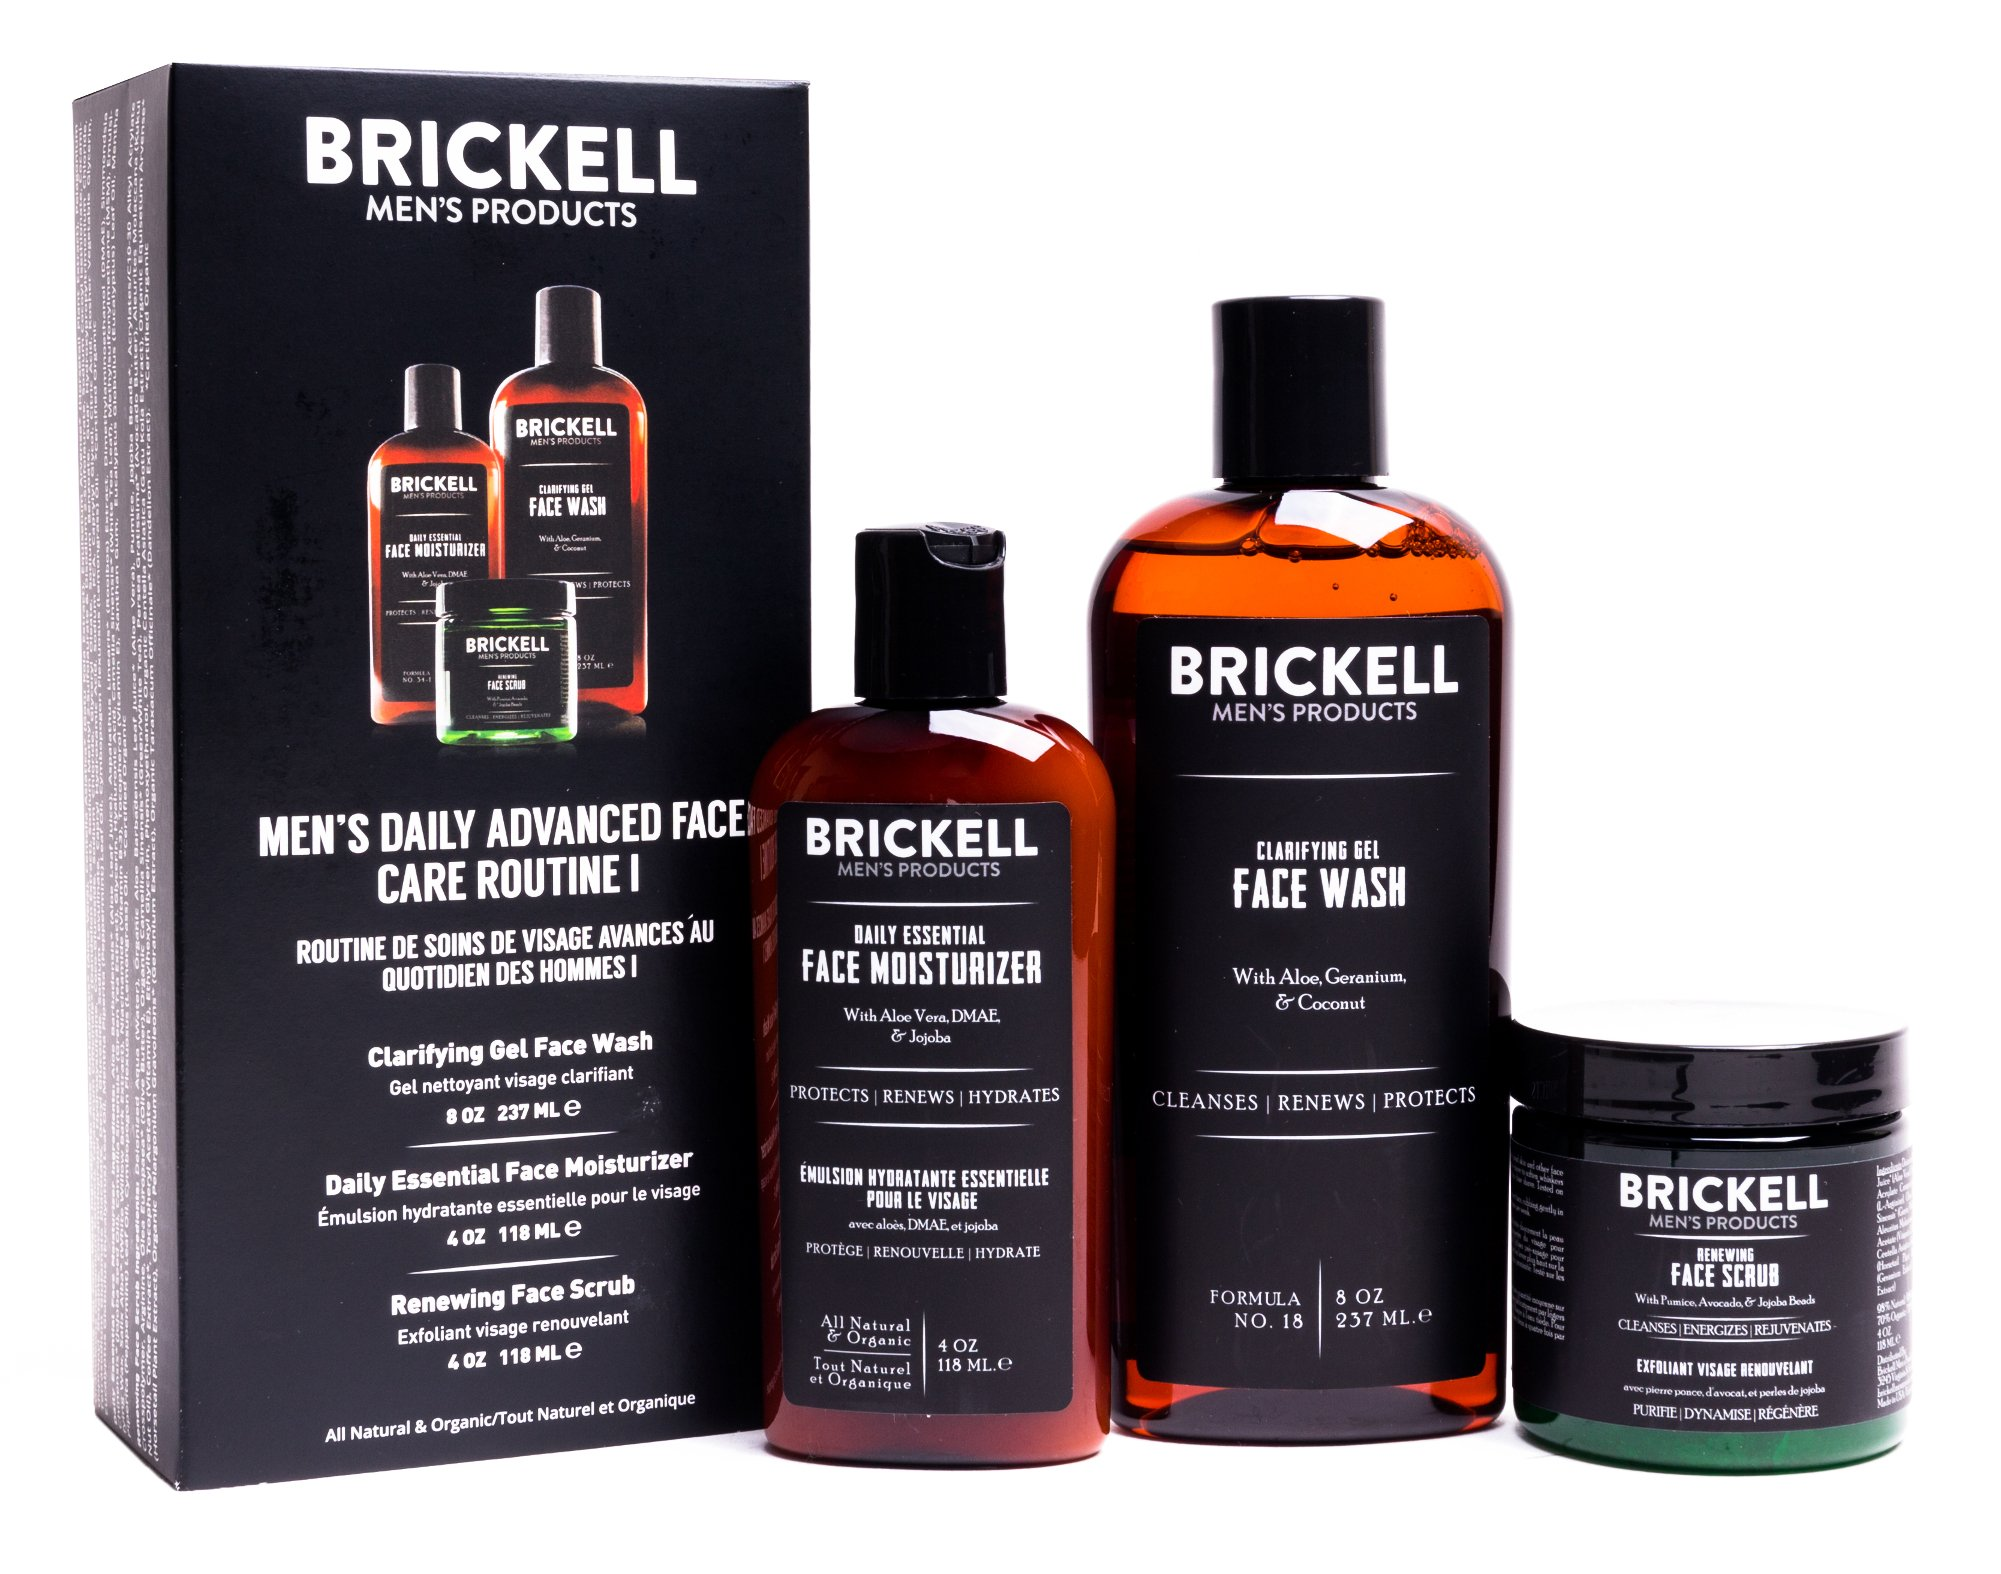 Brickell Men's Daily Advanced Face Care Routine I, Gel Facial Cleanser Wash, Face Scrub, Face Moisturizer Lotion, Natural and Organic, Scented by Brickell Men's Products